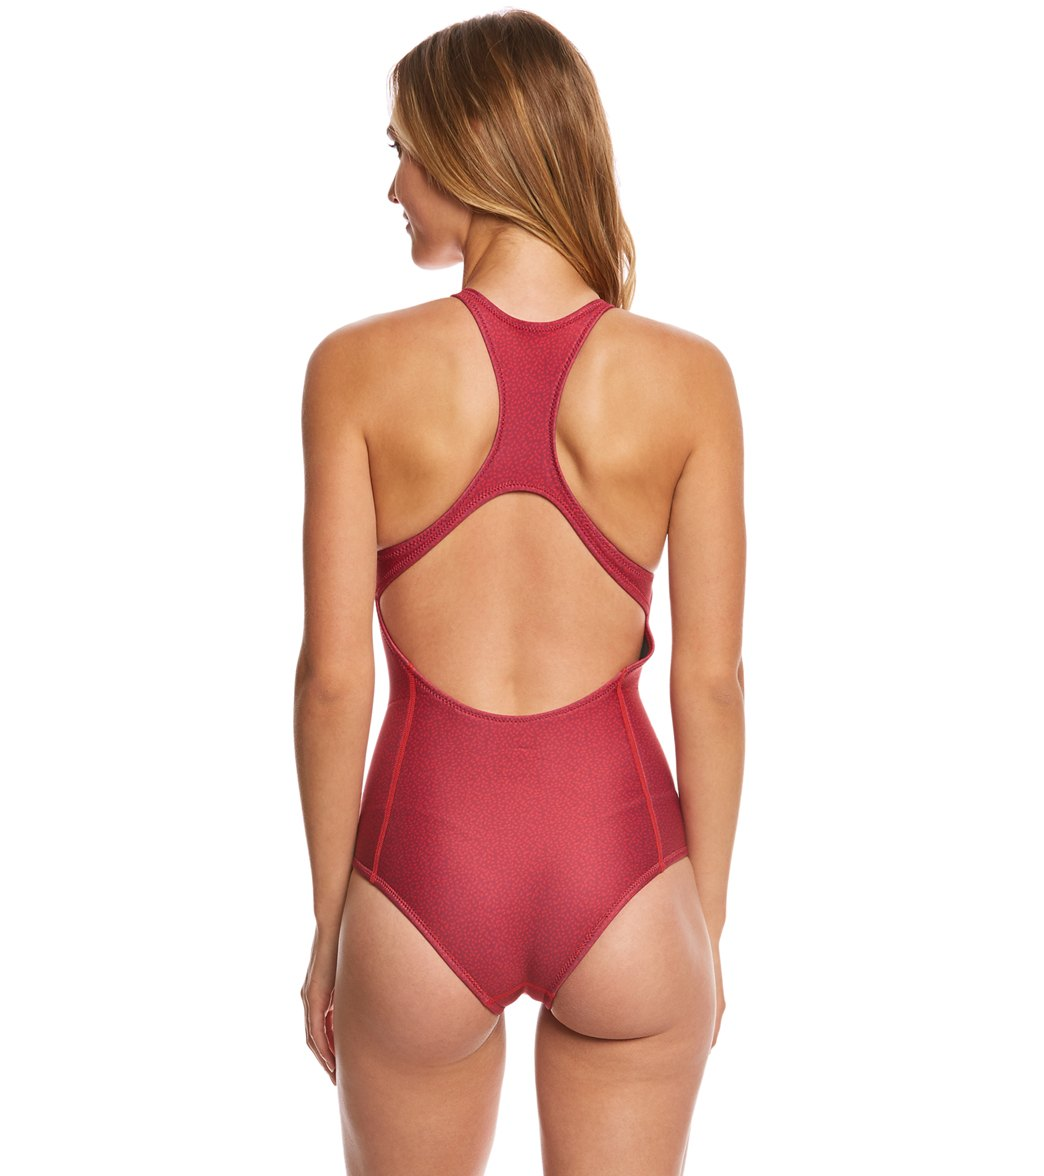 28f7552a9850e Level Six 1.2mm Neoprene Rogue High Neck One Piece Swimsuit at ...